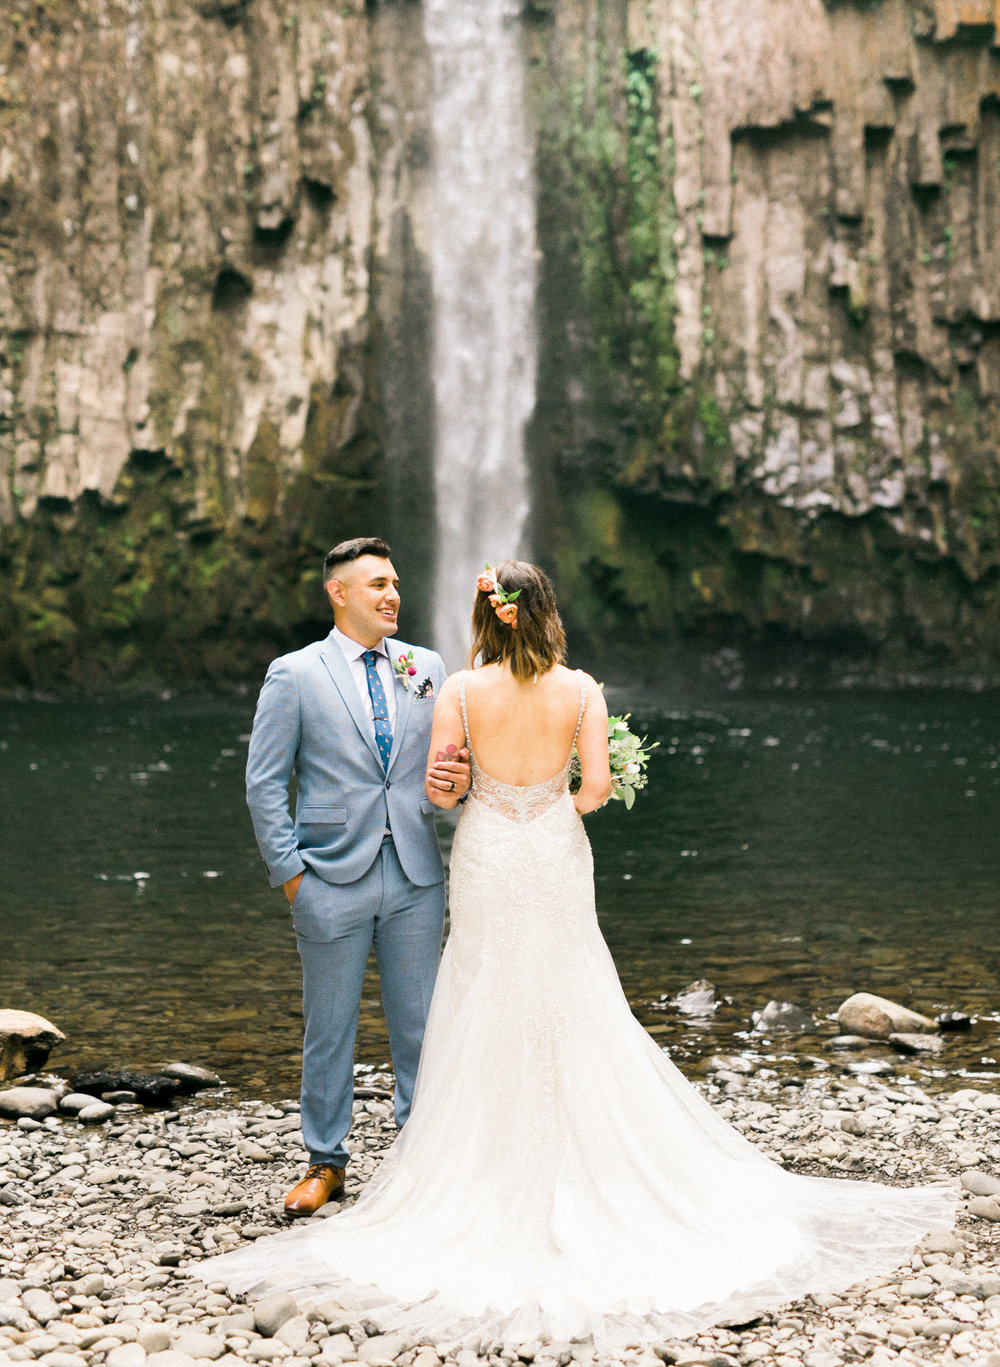 abiqua_falls_elopement_wedding_oregon_photographer_videographer_068.jpg